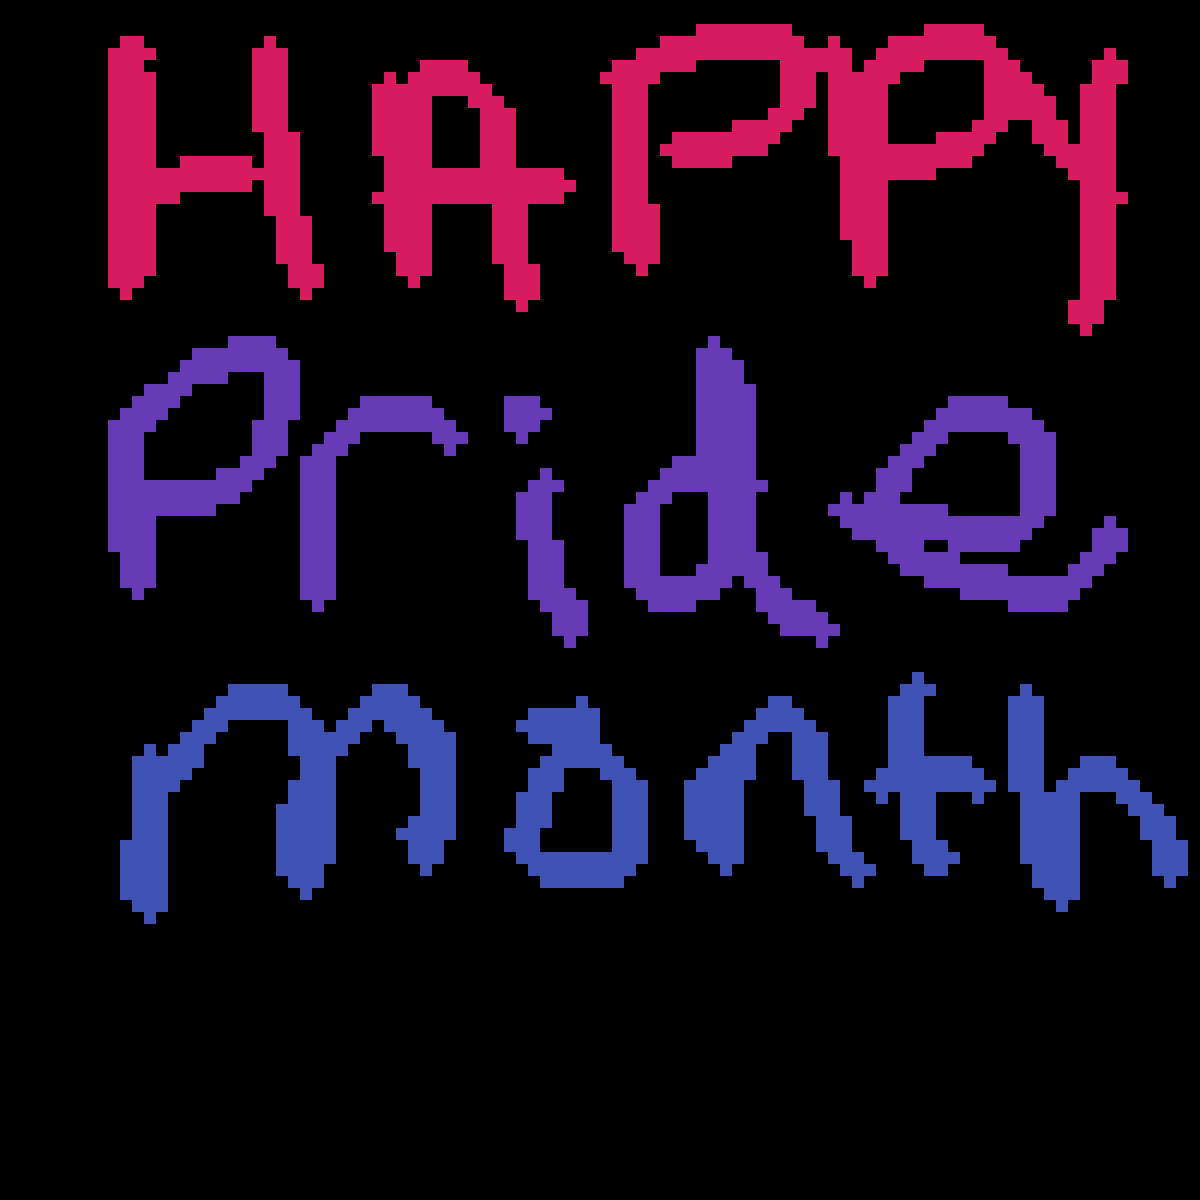 ❤️HAPPY PRIDE MONTH!!!!!!!❤️ by im-a-shadow